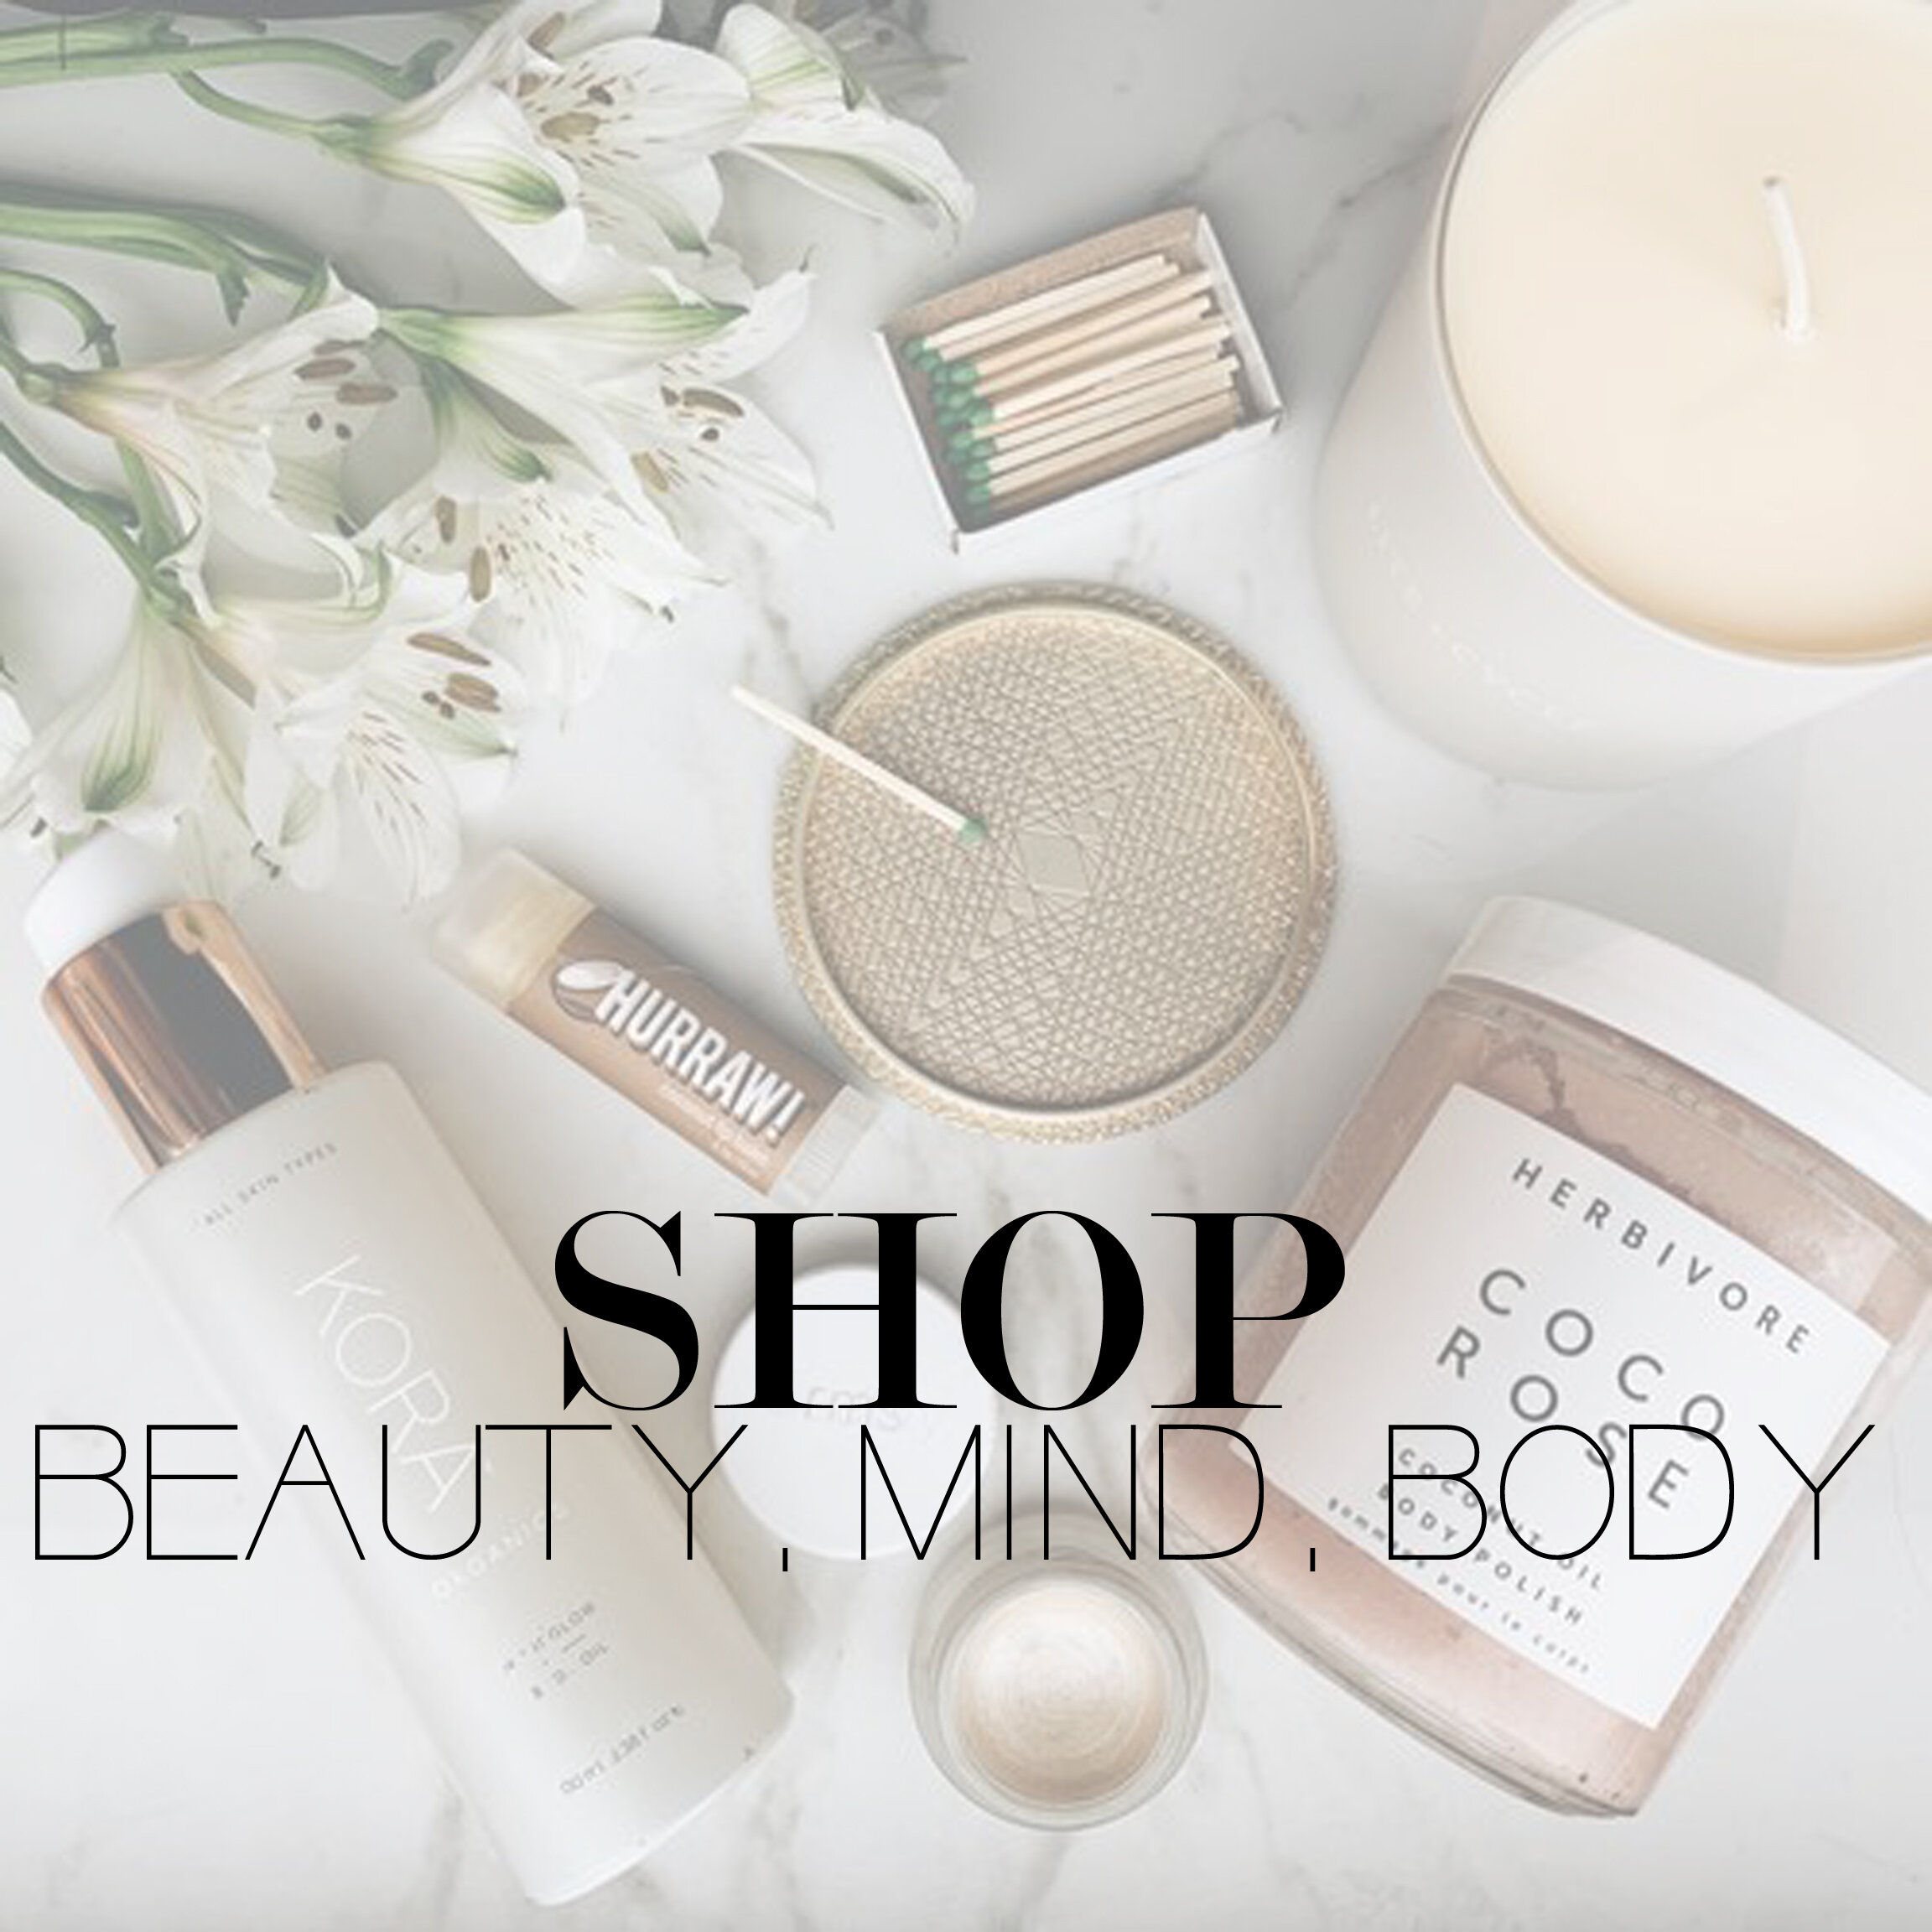 shop beauty mind body.jpg